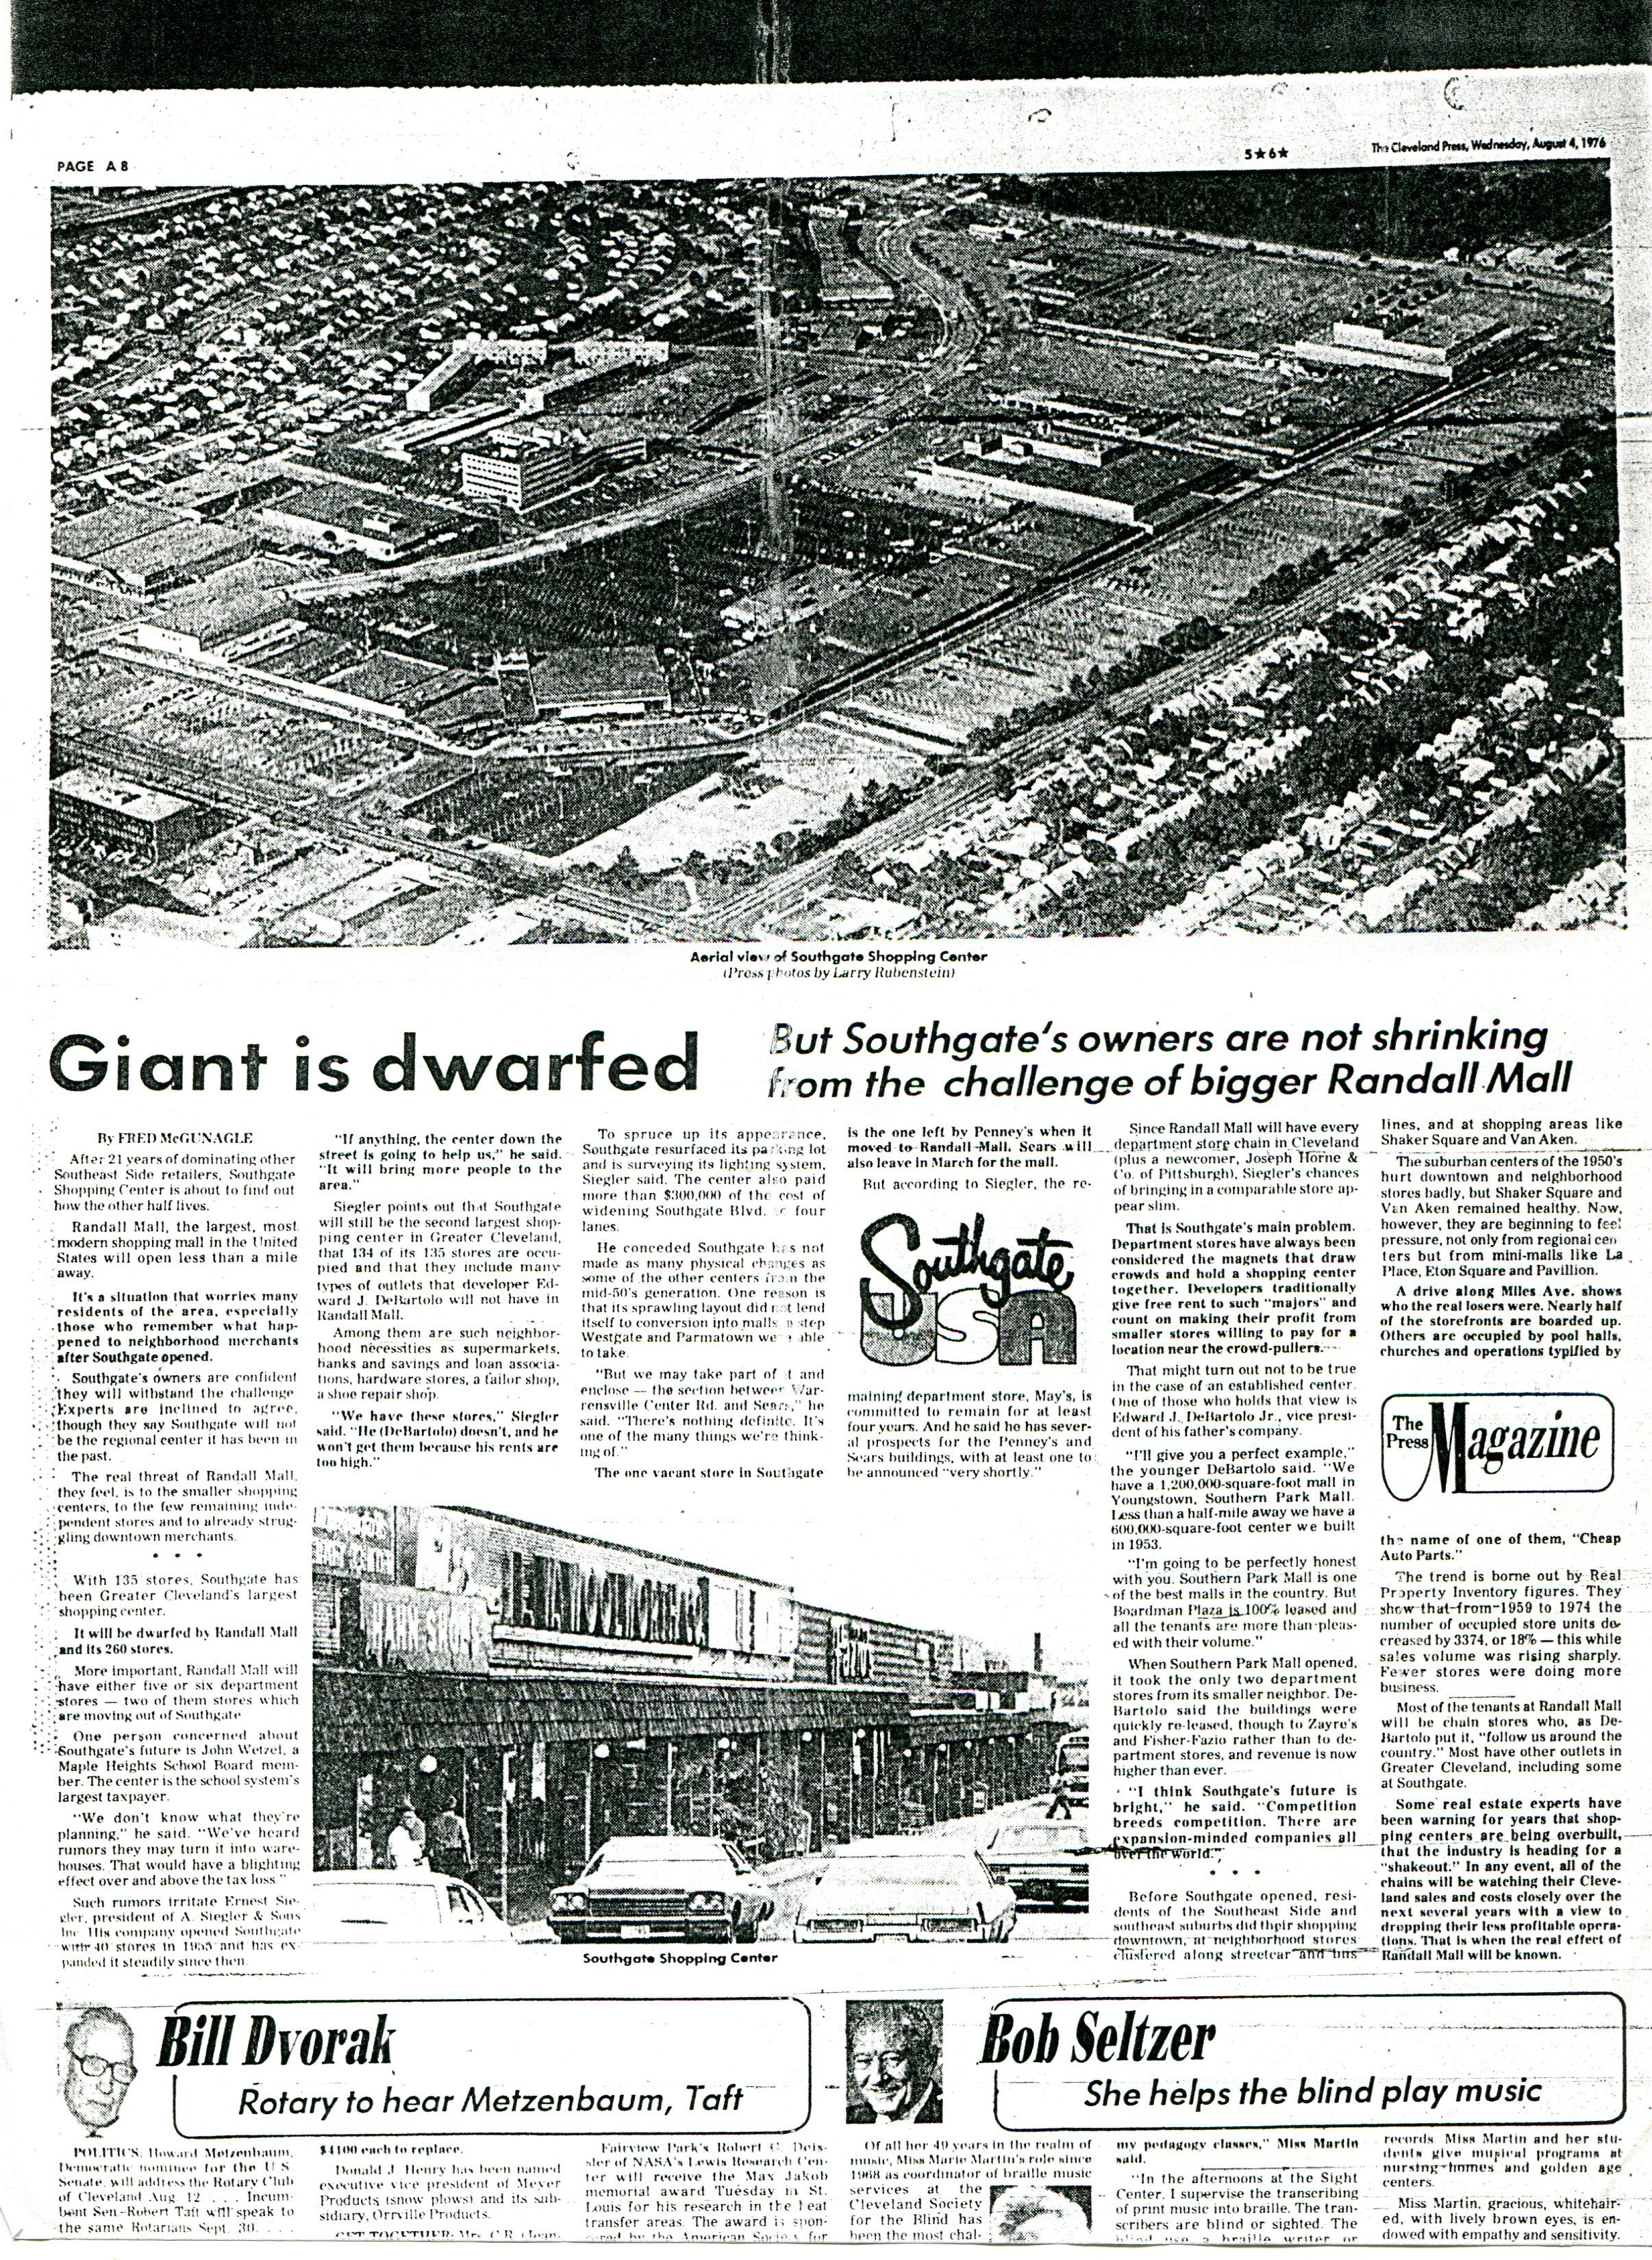 Article about Southgate during Randall Park Mall grand opening.